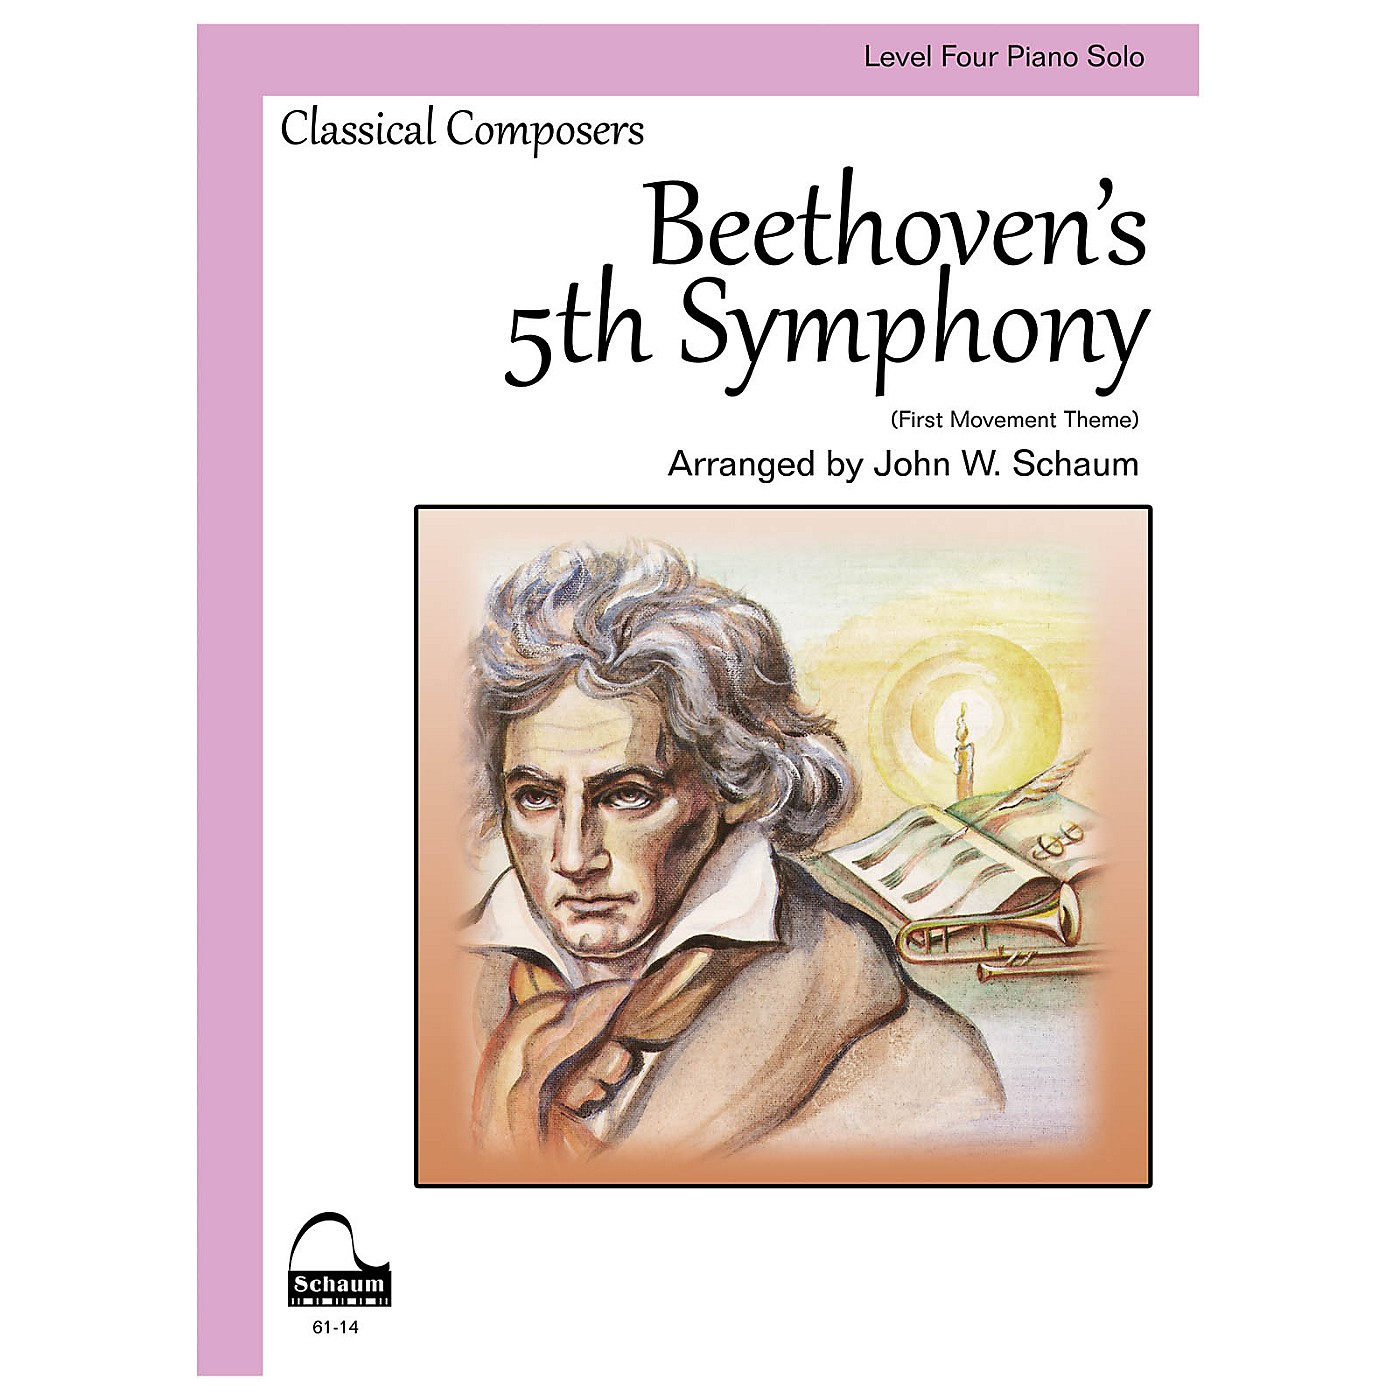 SCHAUM Beethoven's 5th Symphony Educational Piano Book by Ludwig van Beethoven (Level 4) thumbnail